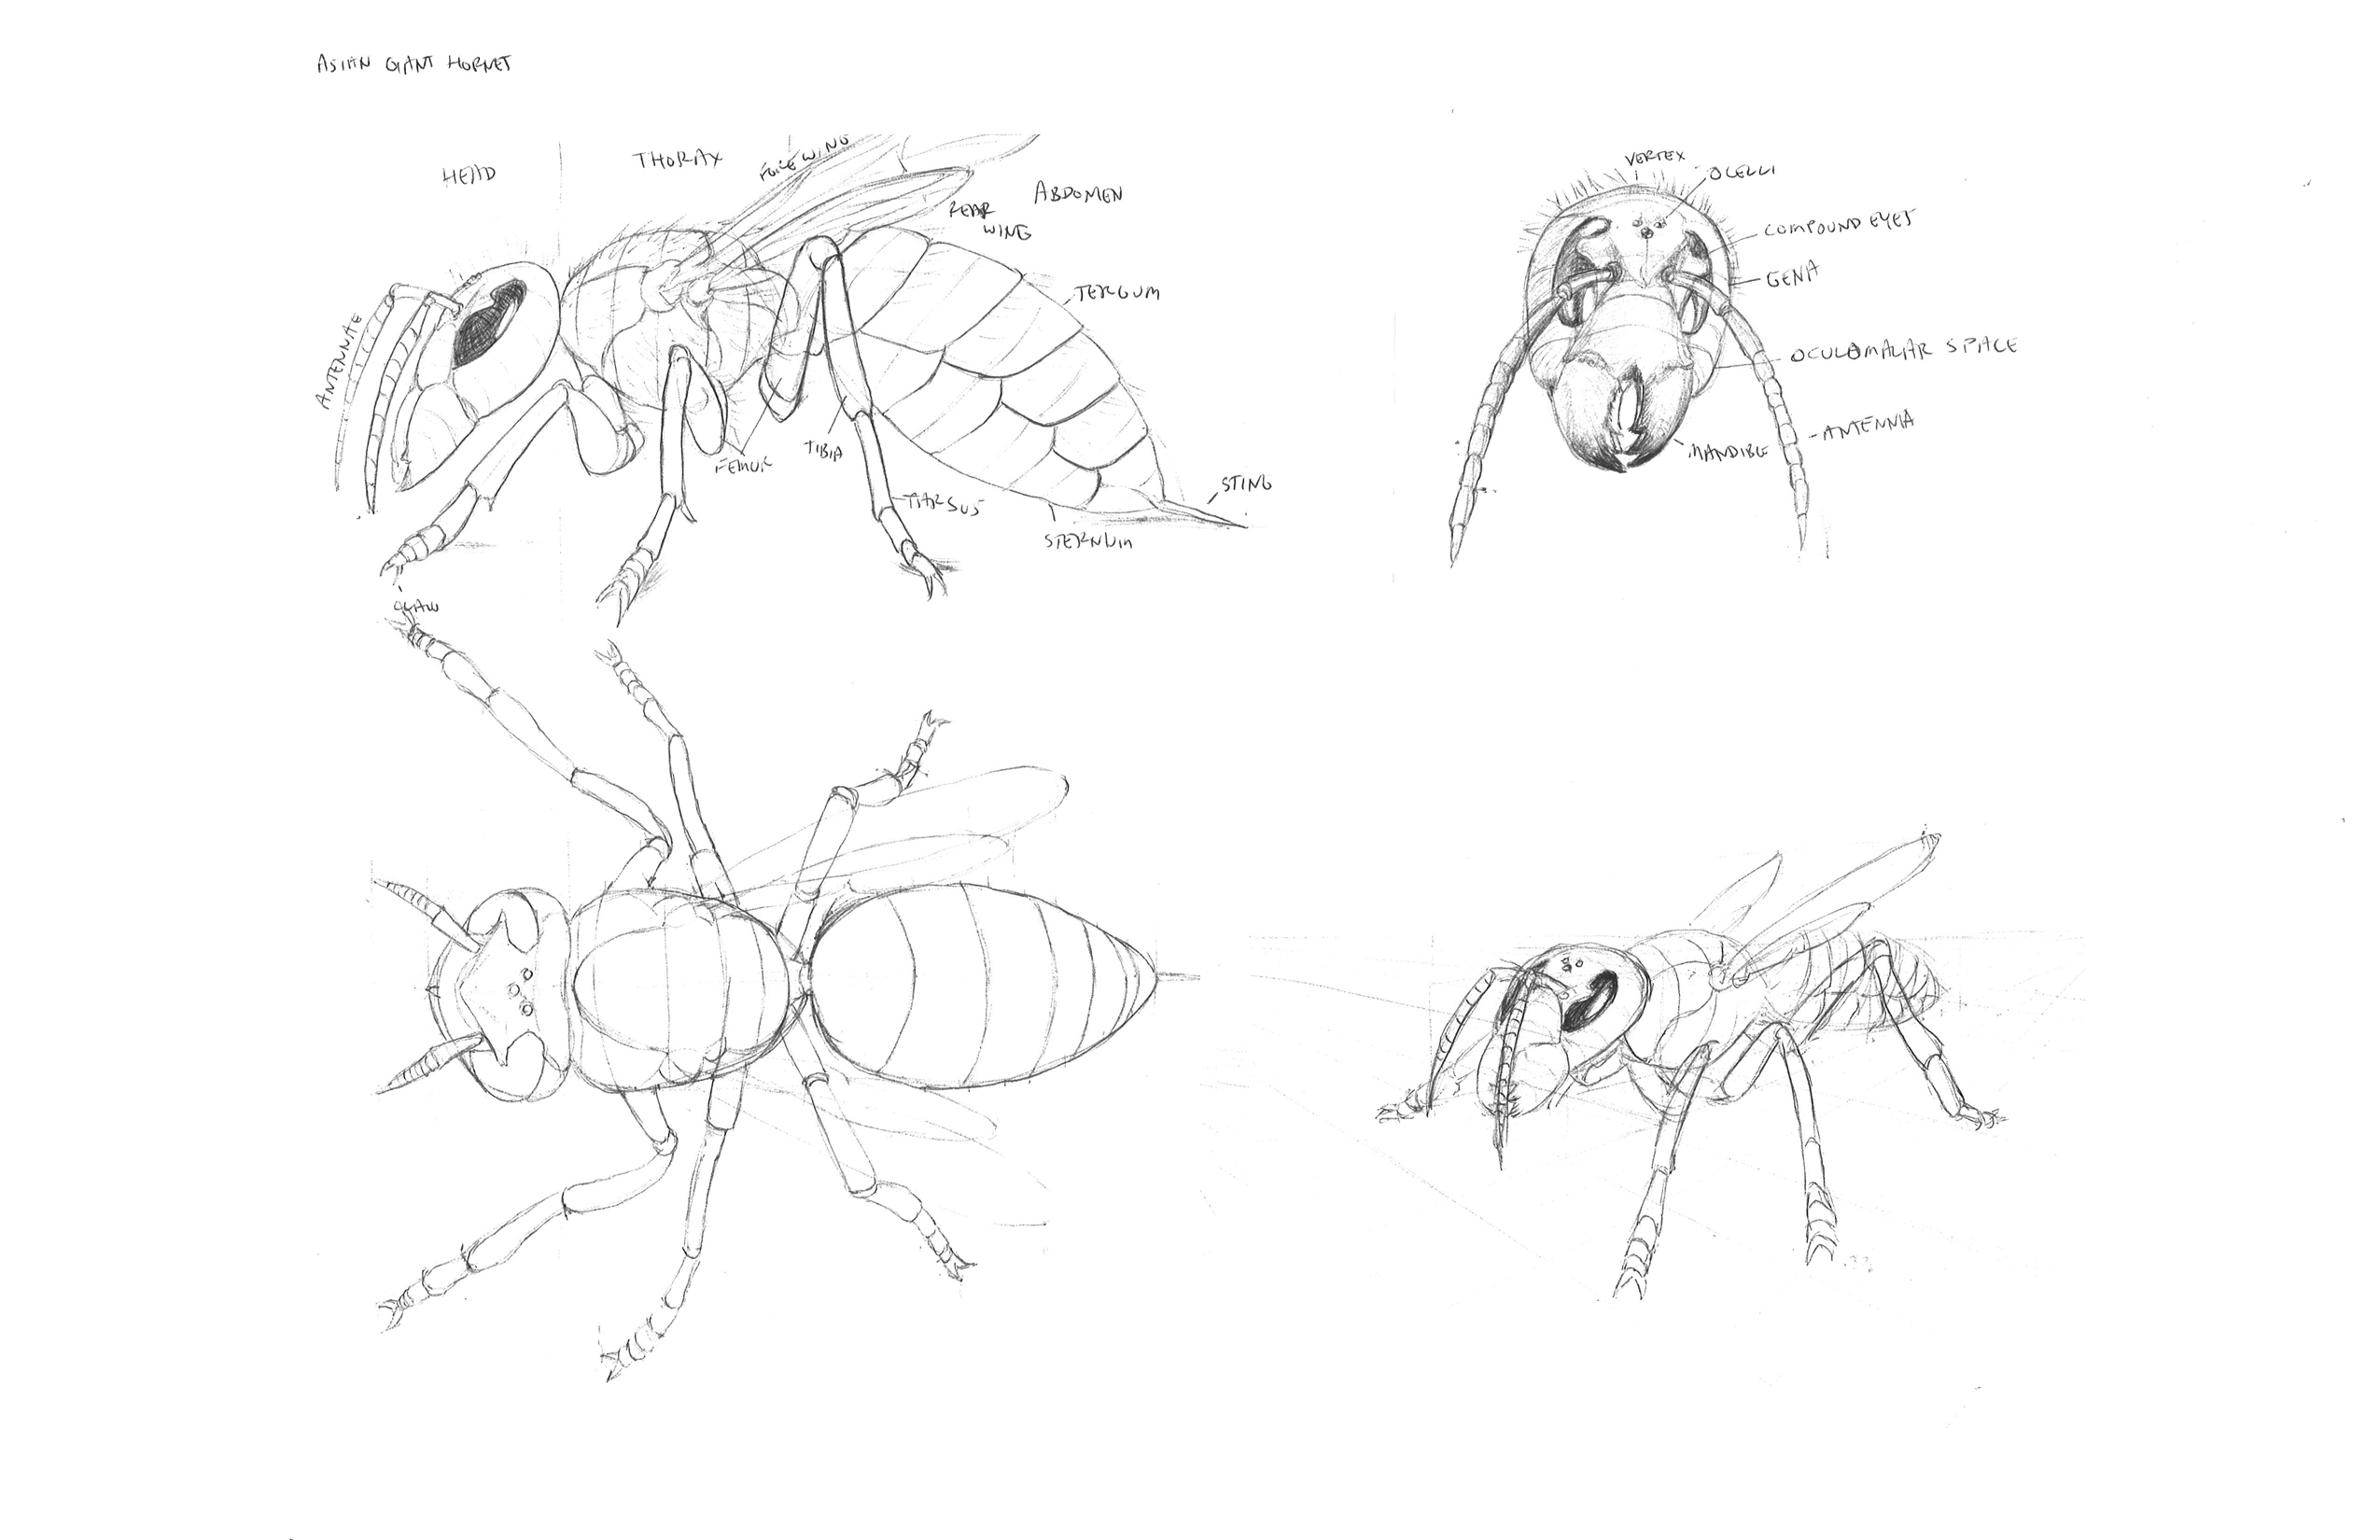 hornet anatomy diagram sps audiovox wiring gotta keep drawing and some studies of the asian giant these were somewhat time